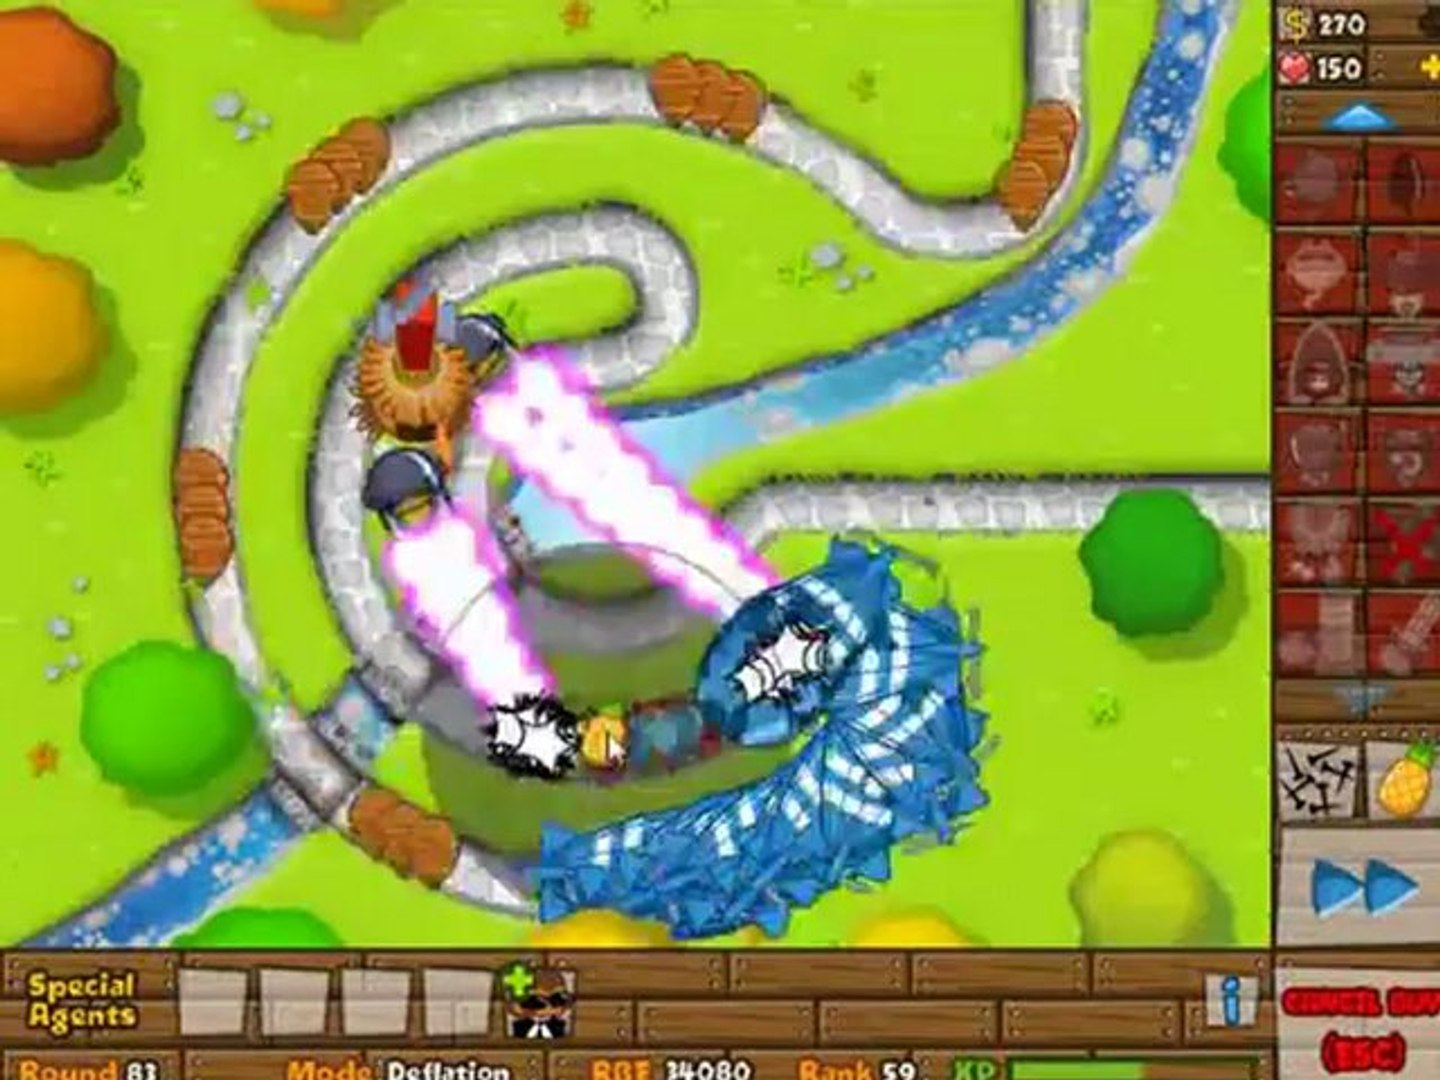 BTD5 Bloons Tower Defense 5 Walkthrough - Deflation Mode - Track 2 - Died  on Round 86